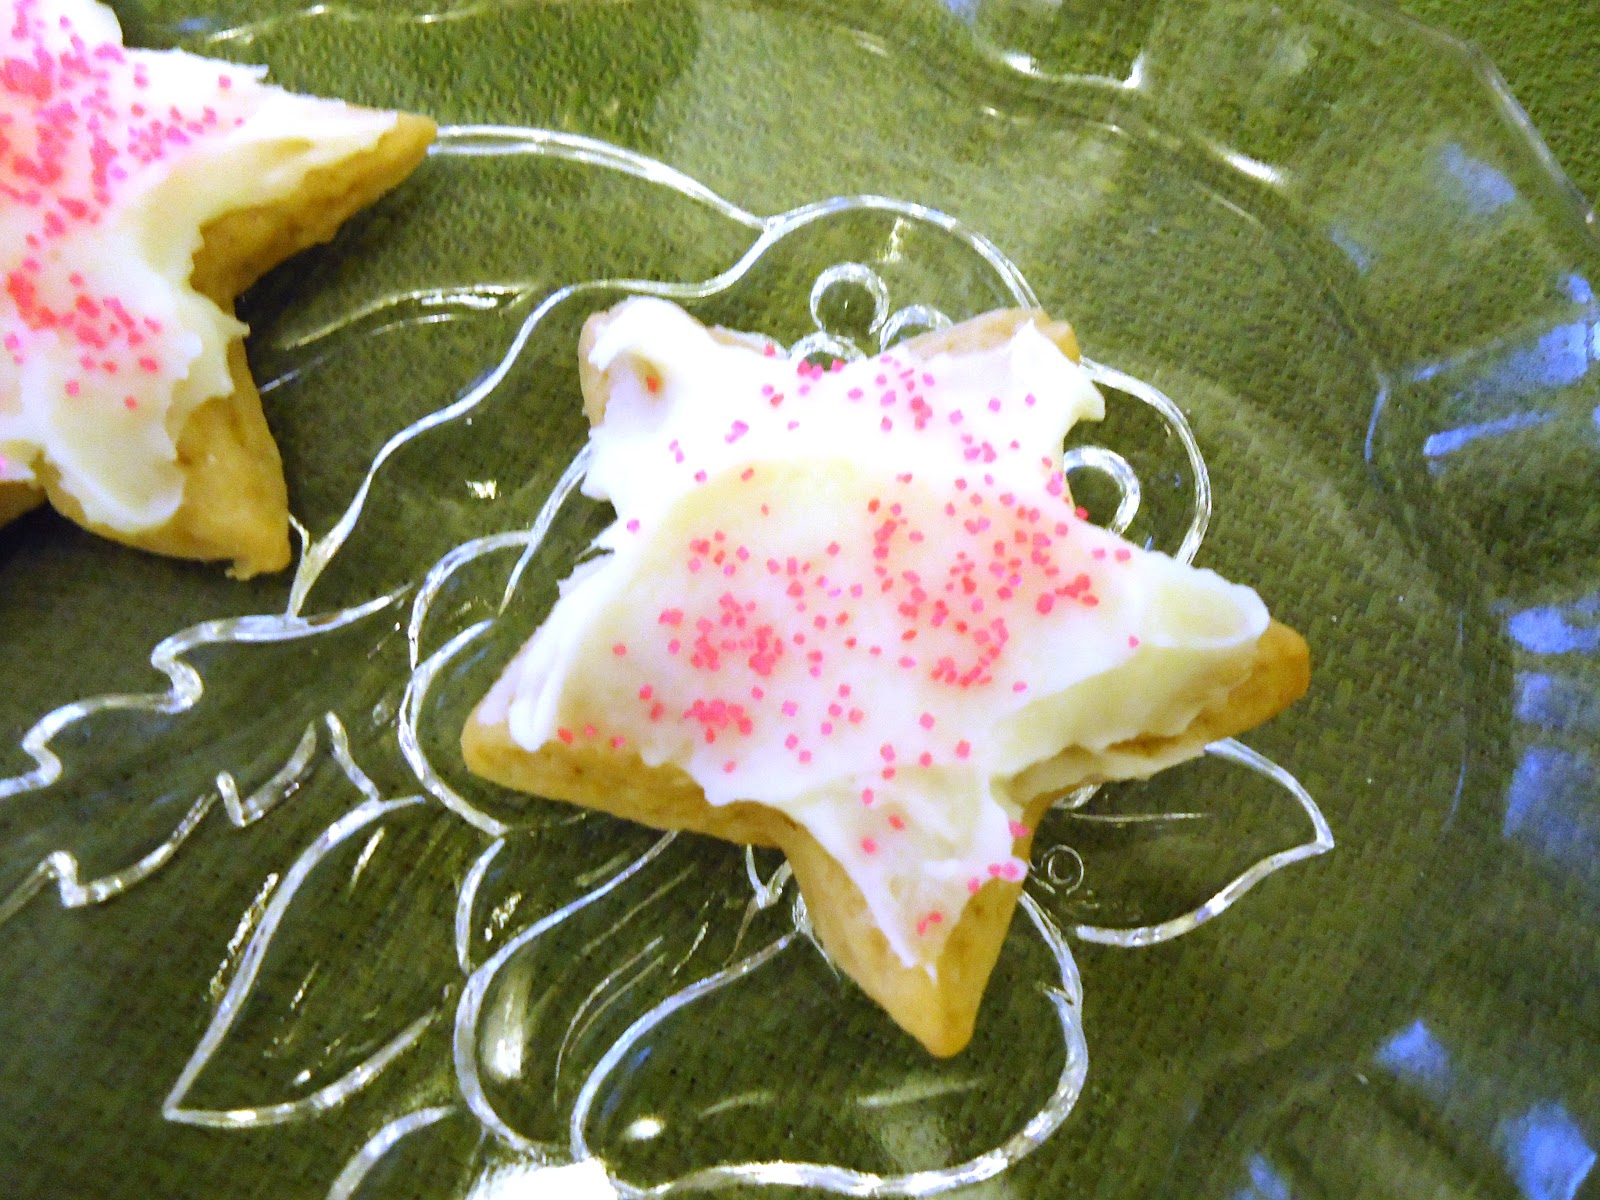 ... Own Stuff: Small Batch Recipe: Sugar Cookies with Buttercream Frosting